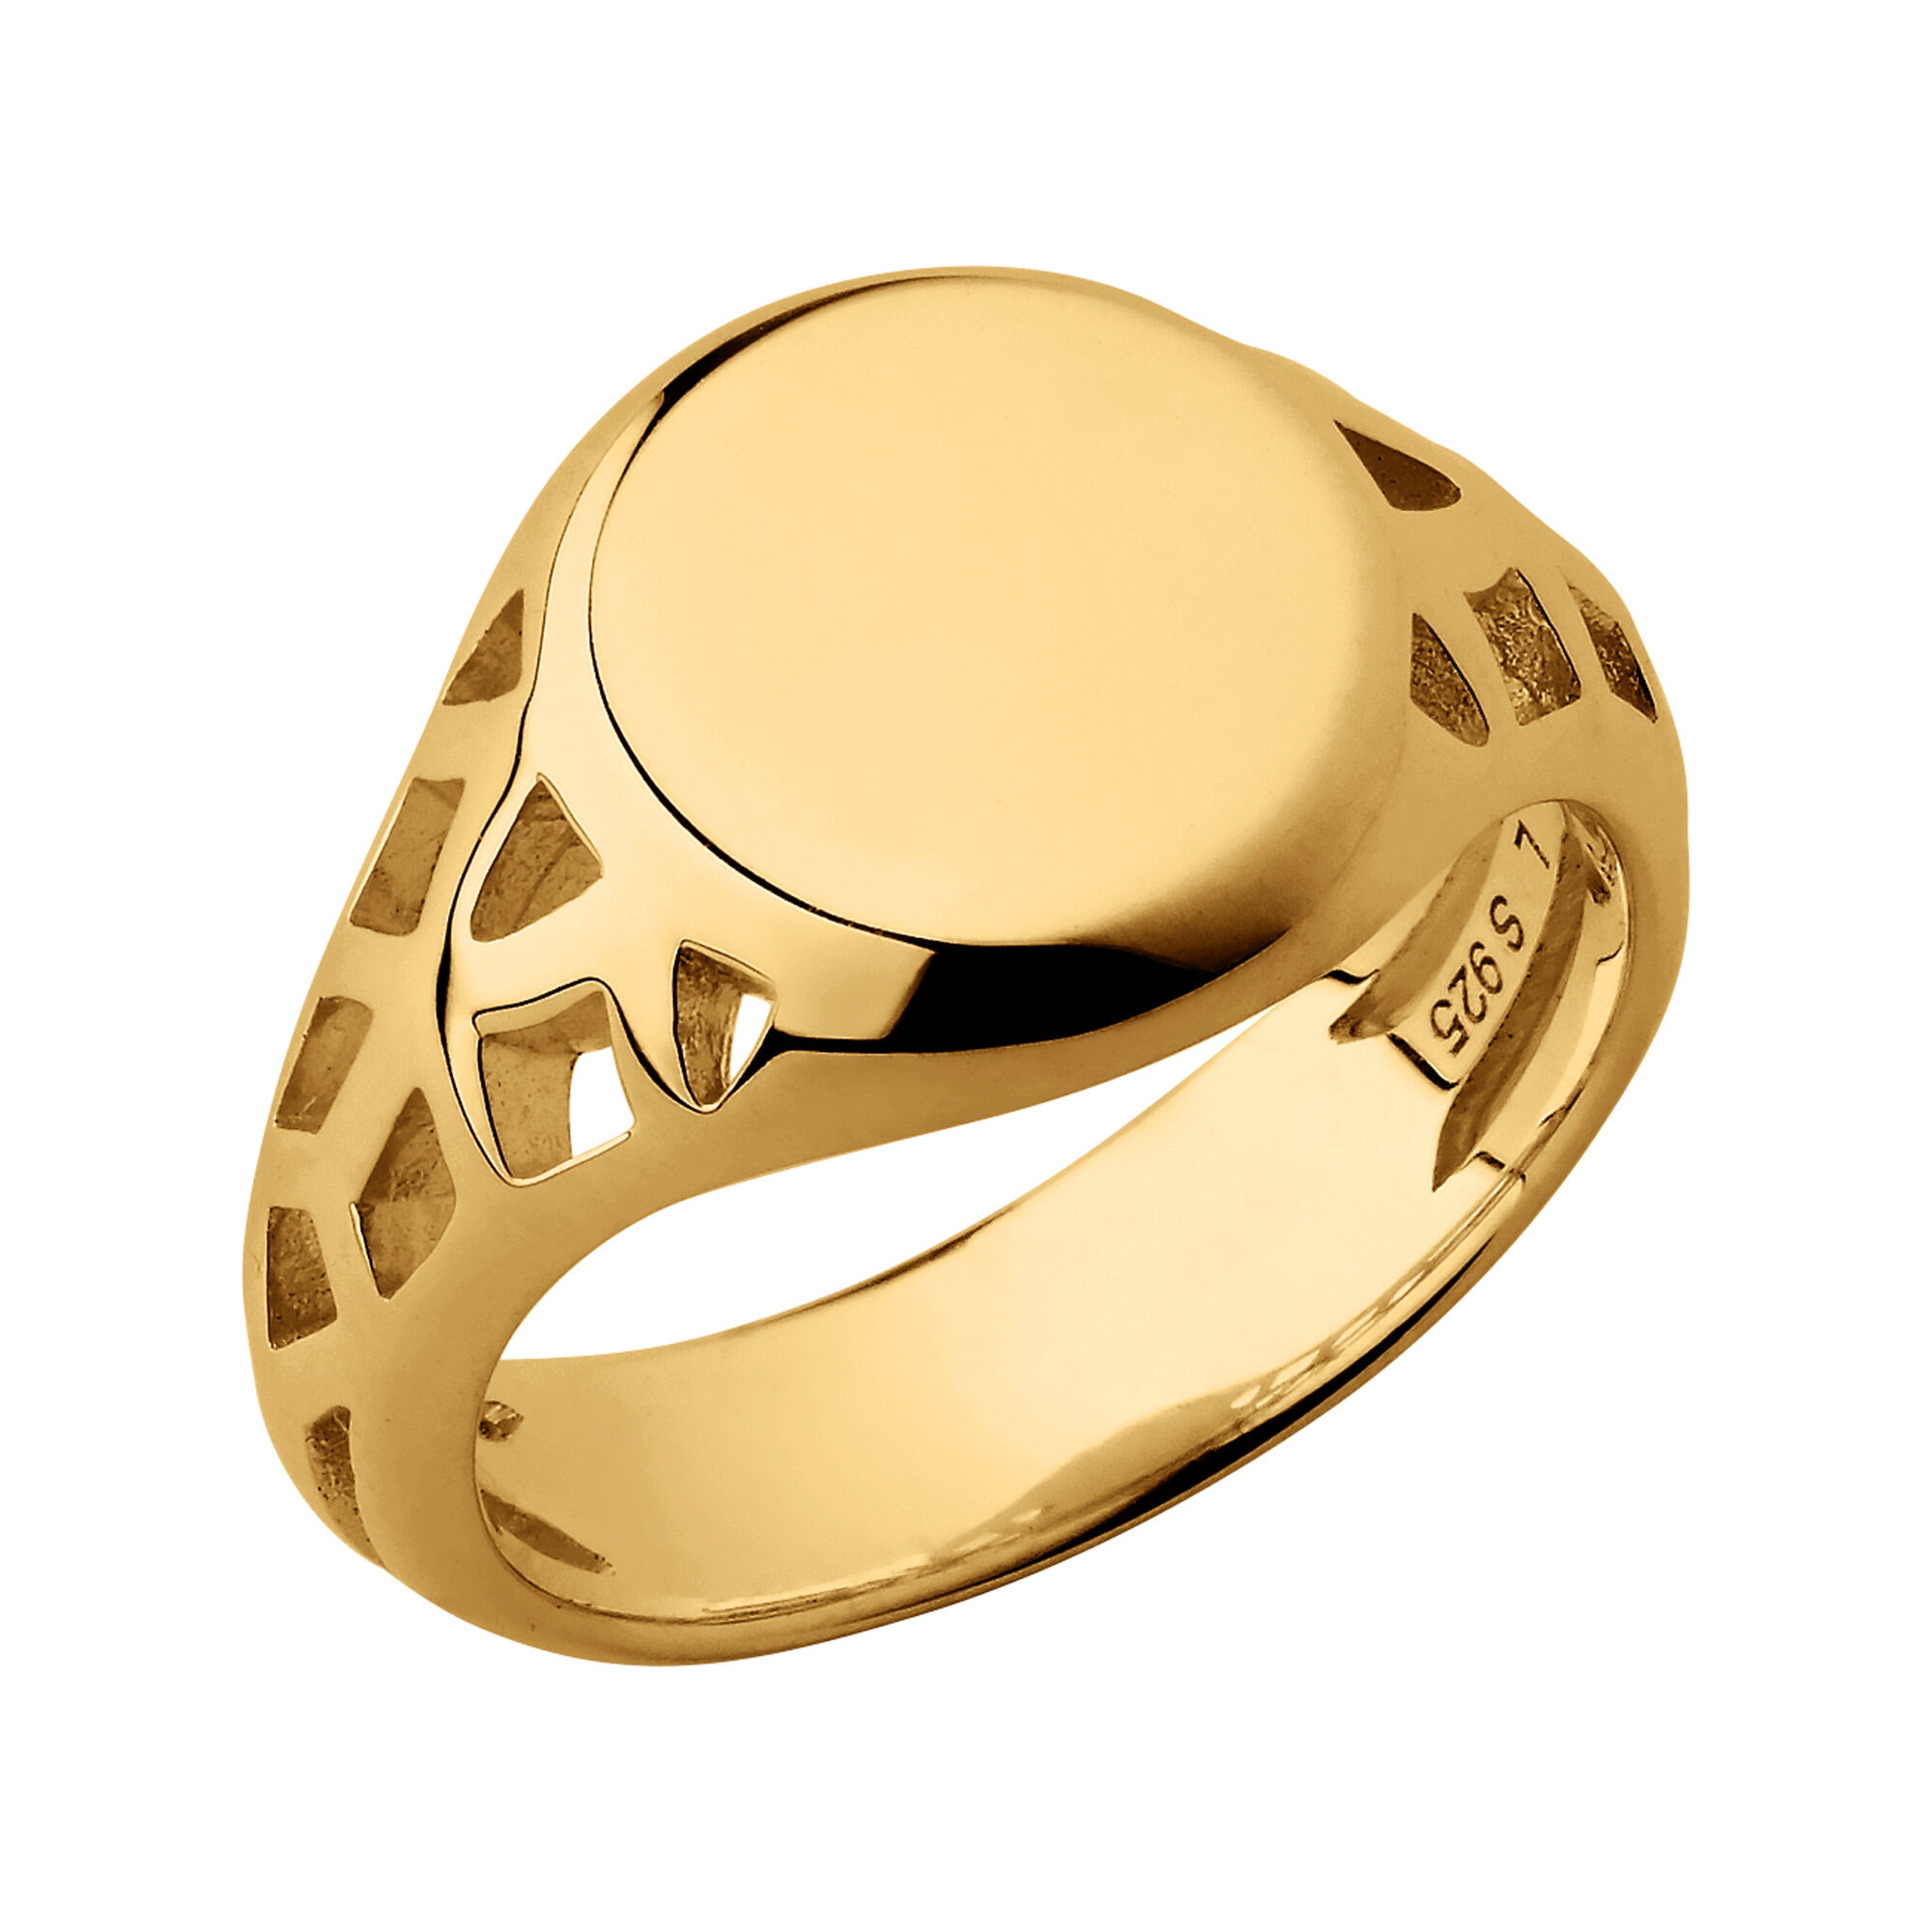 amour of bluestonecom collection com indian market rings poetic trends launches symbolism news jewellery jeweller bluestone product upcoming nature the